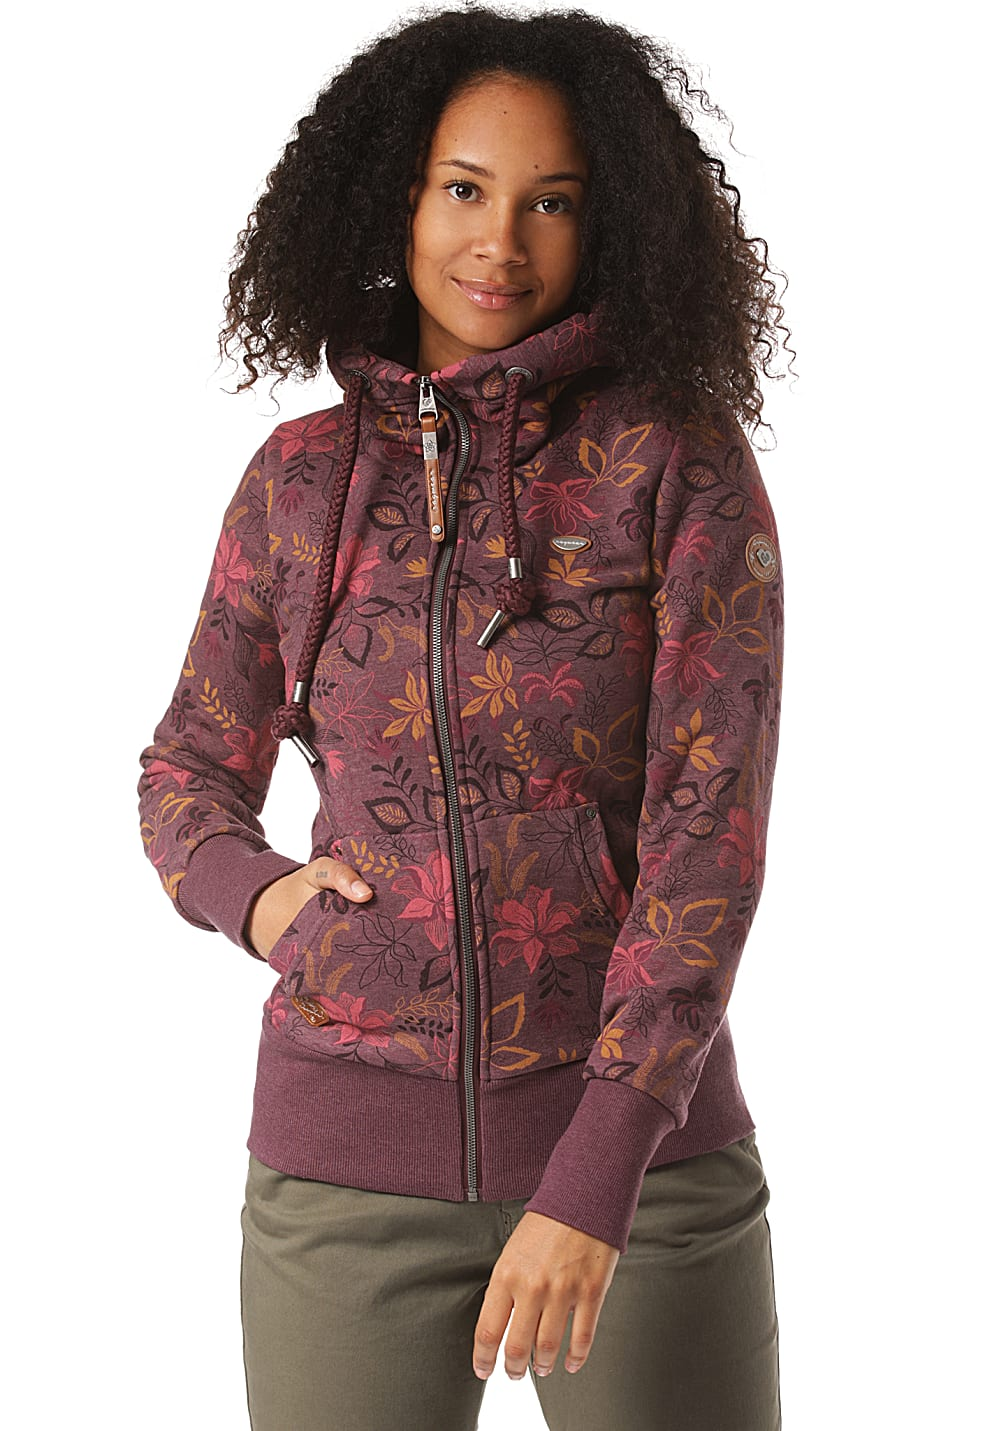 Jacken - ragwear Neska Flowers Zip Kapuzenjacke für Damen Rot  - Onlineshop Planet Sports